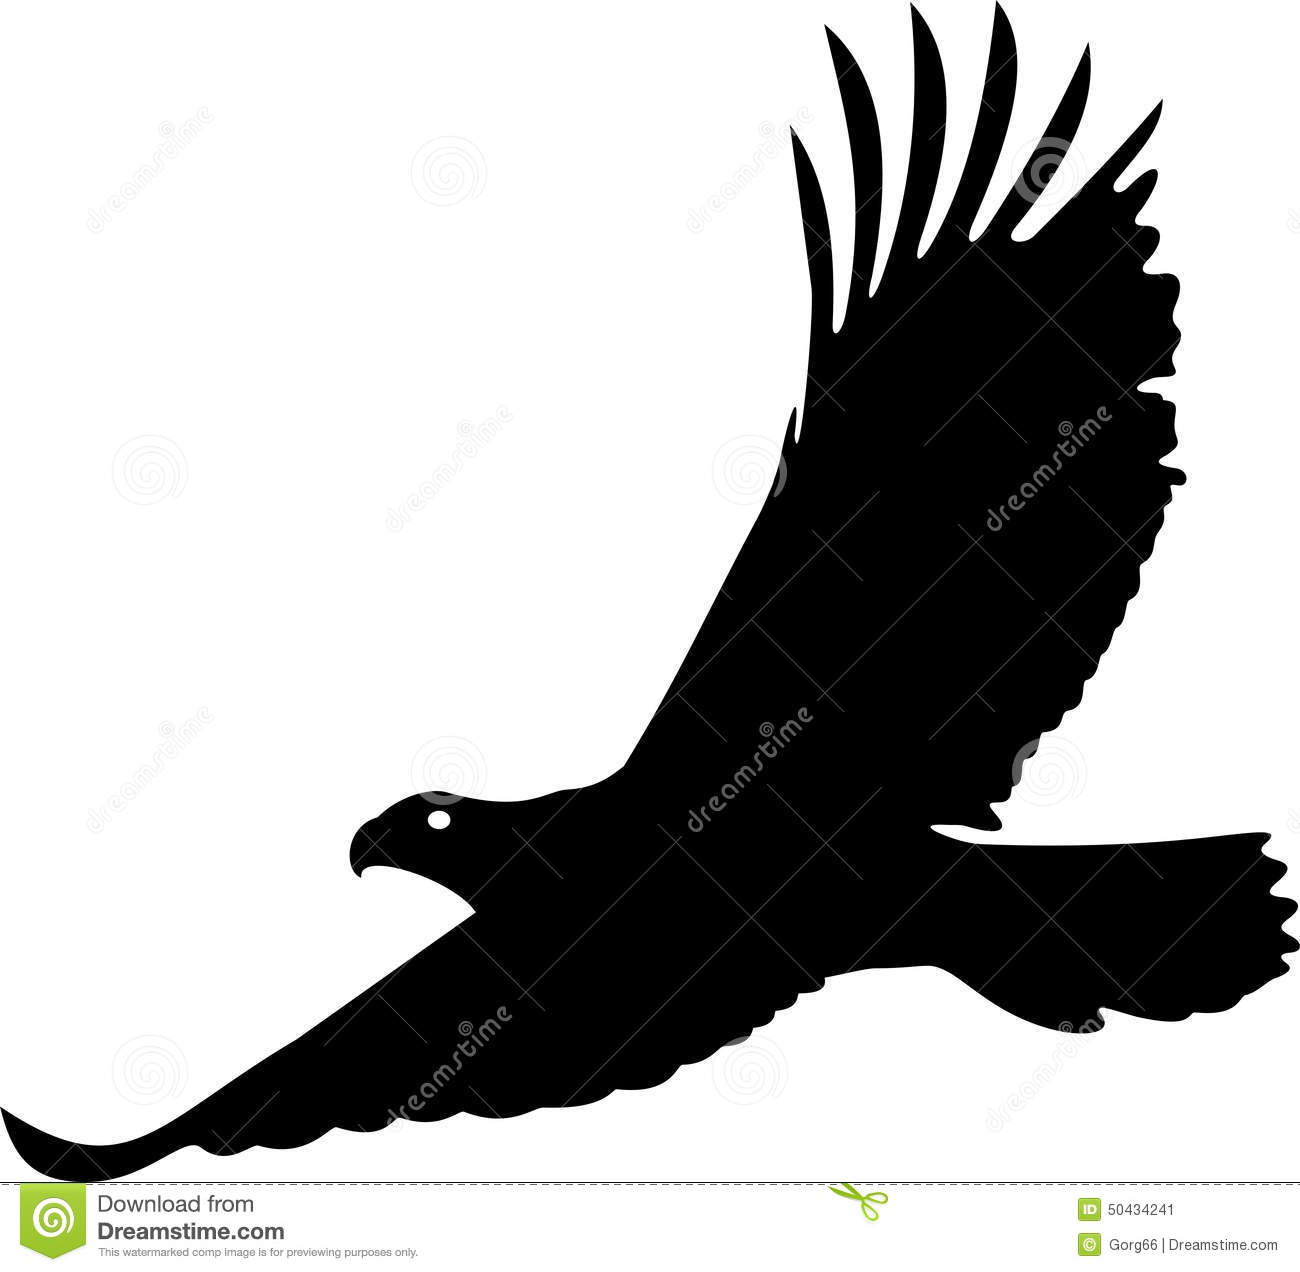 Birds of prey clipart black and white.